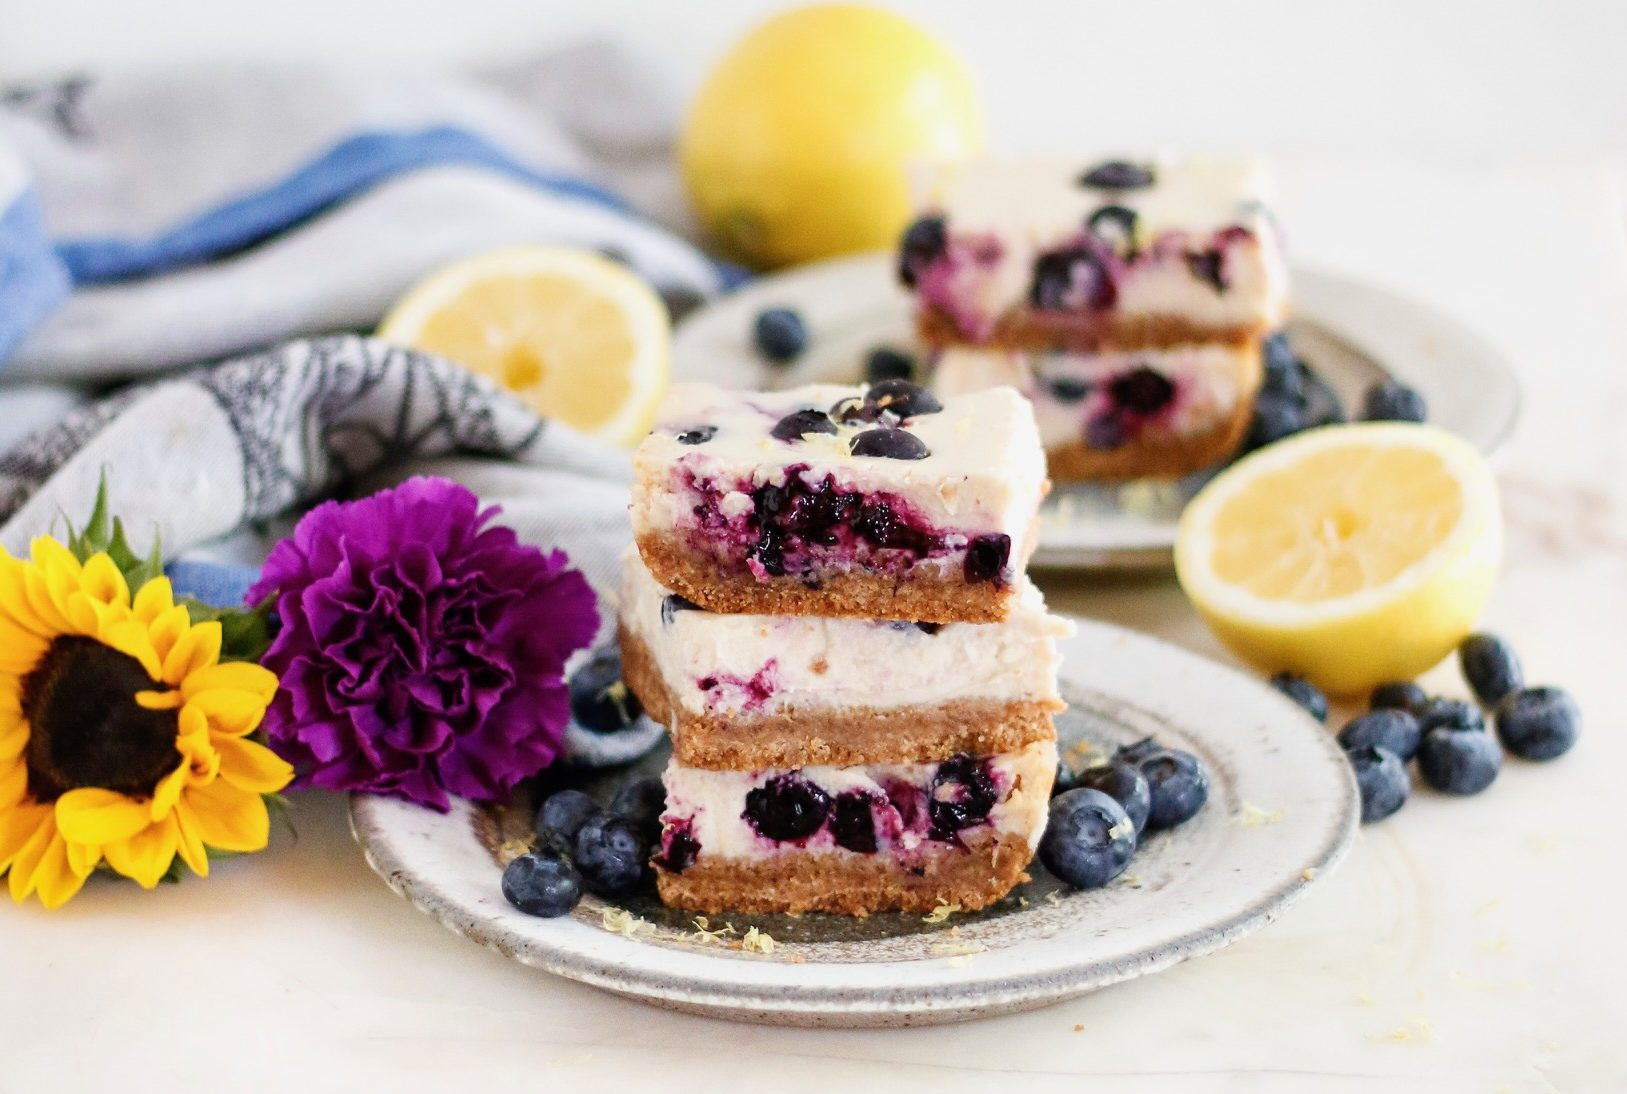 vegan cheesecake bars, blueberry lemon cheesecake bars, vegan blueberry lemon cheesecake bars, cheesecake bars